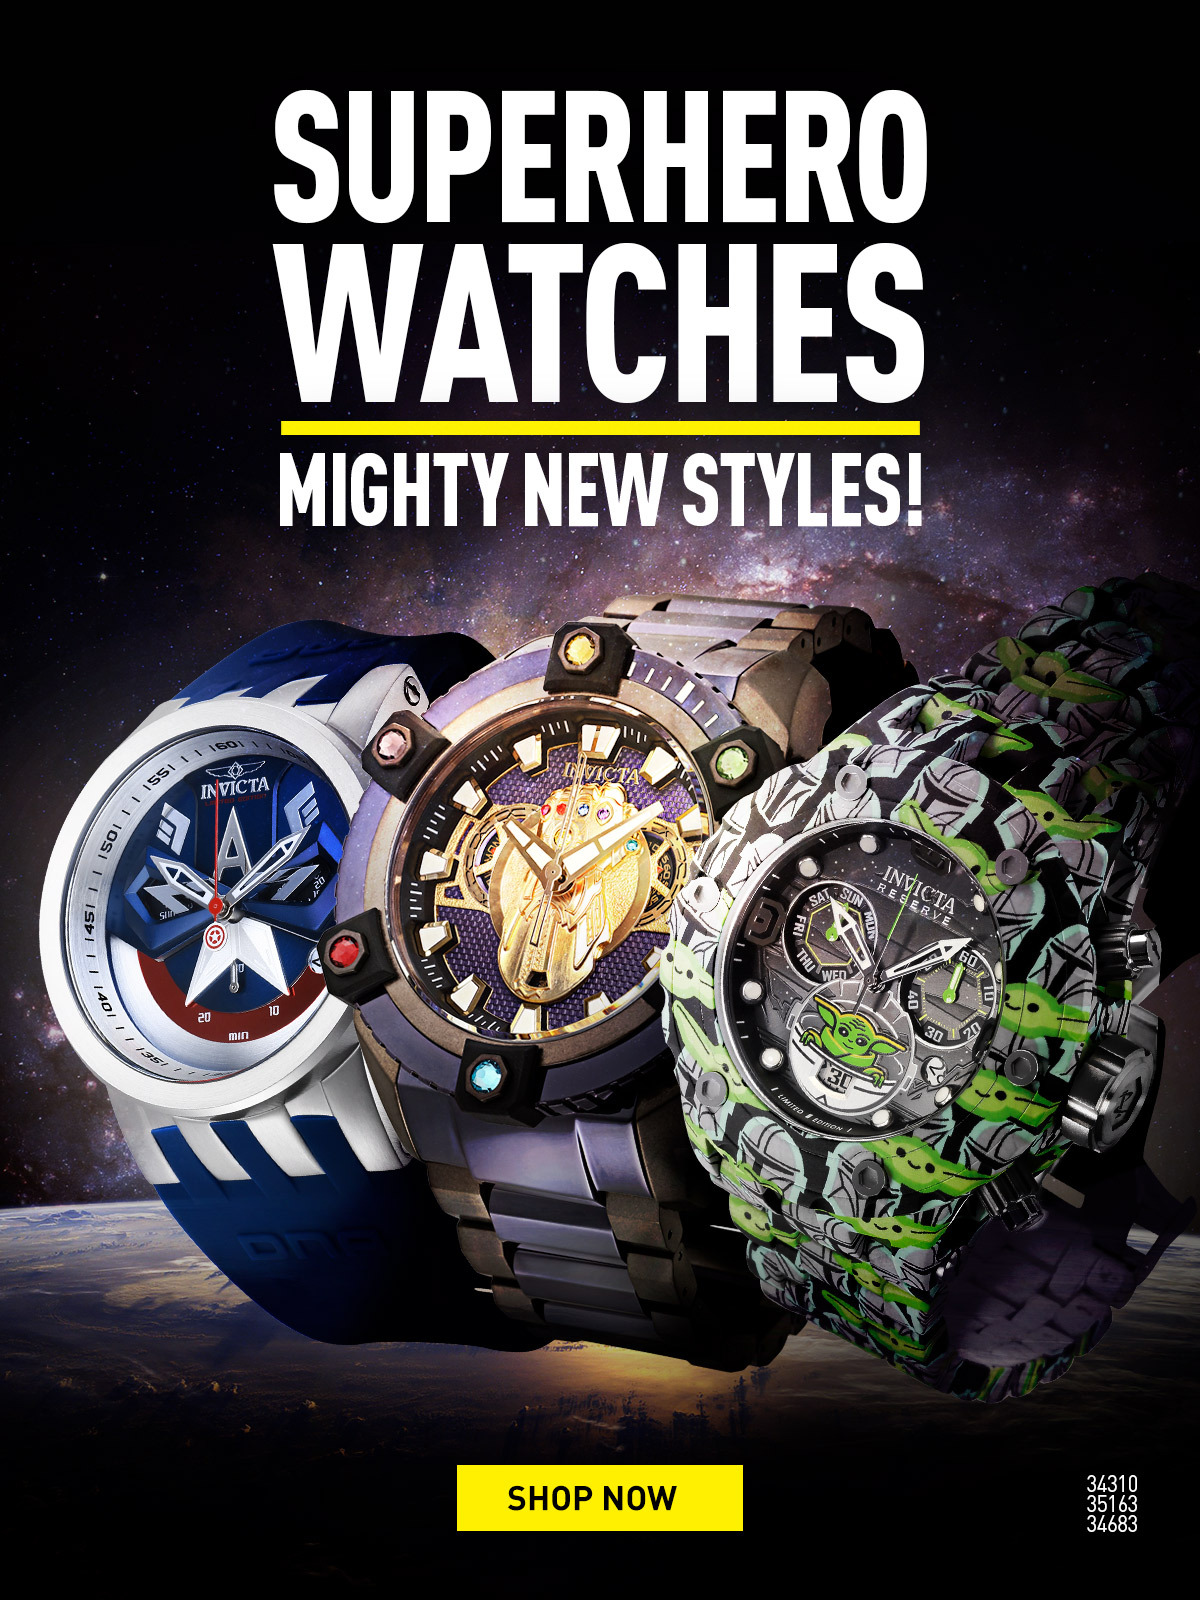 Superhero Watches. Mighty new styles!